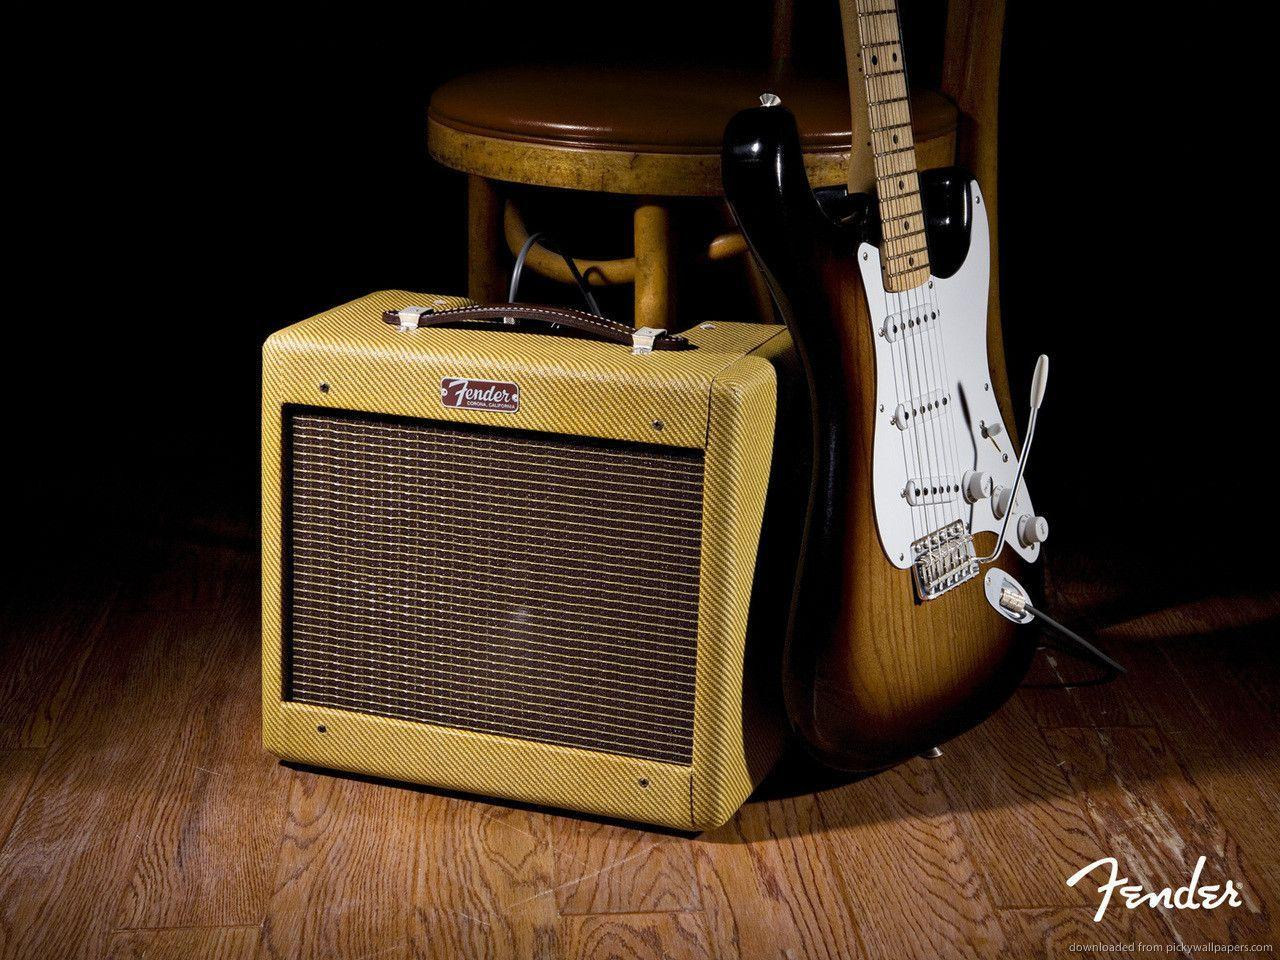 Download 1280x960 Old Fender Amp And Electric Guitar Wallpapers